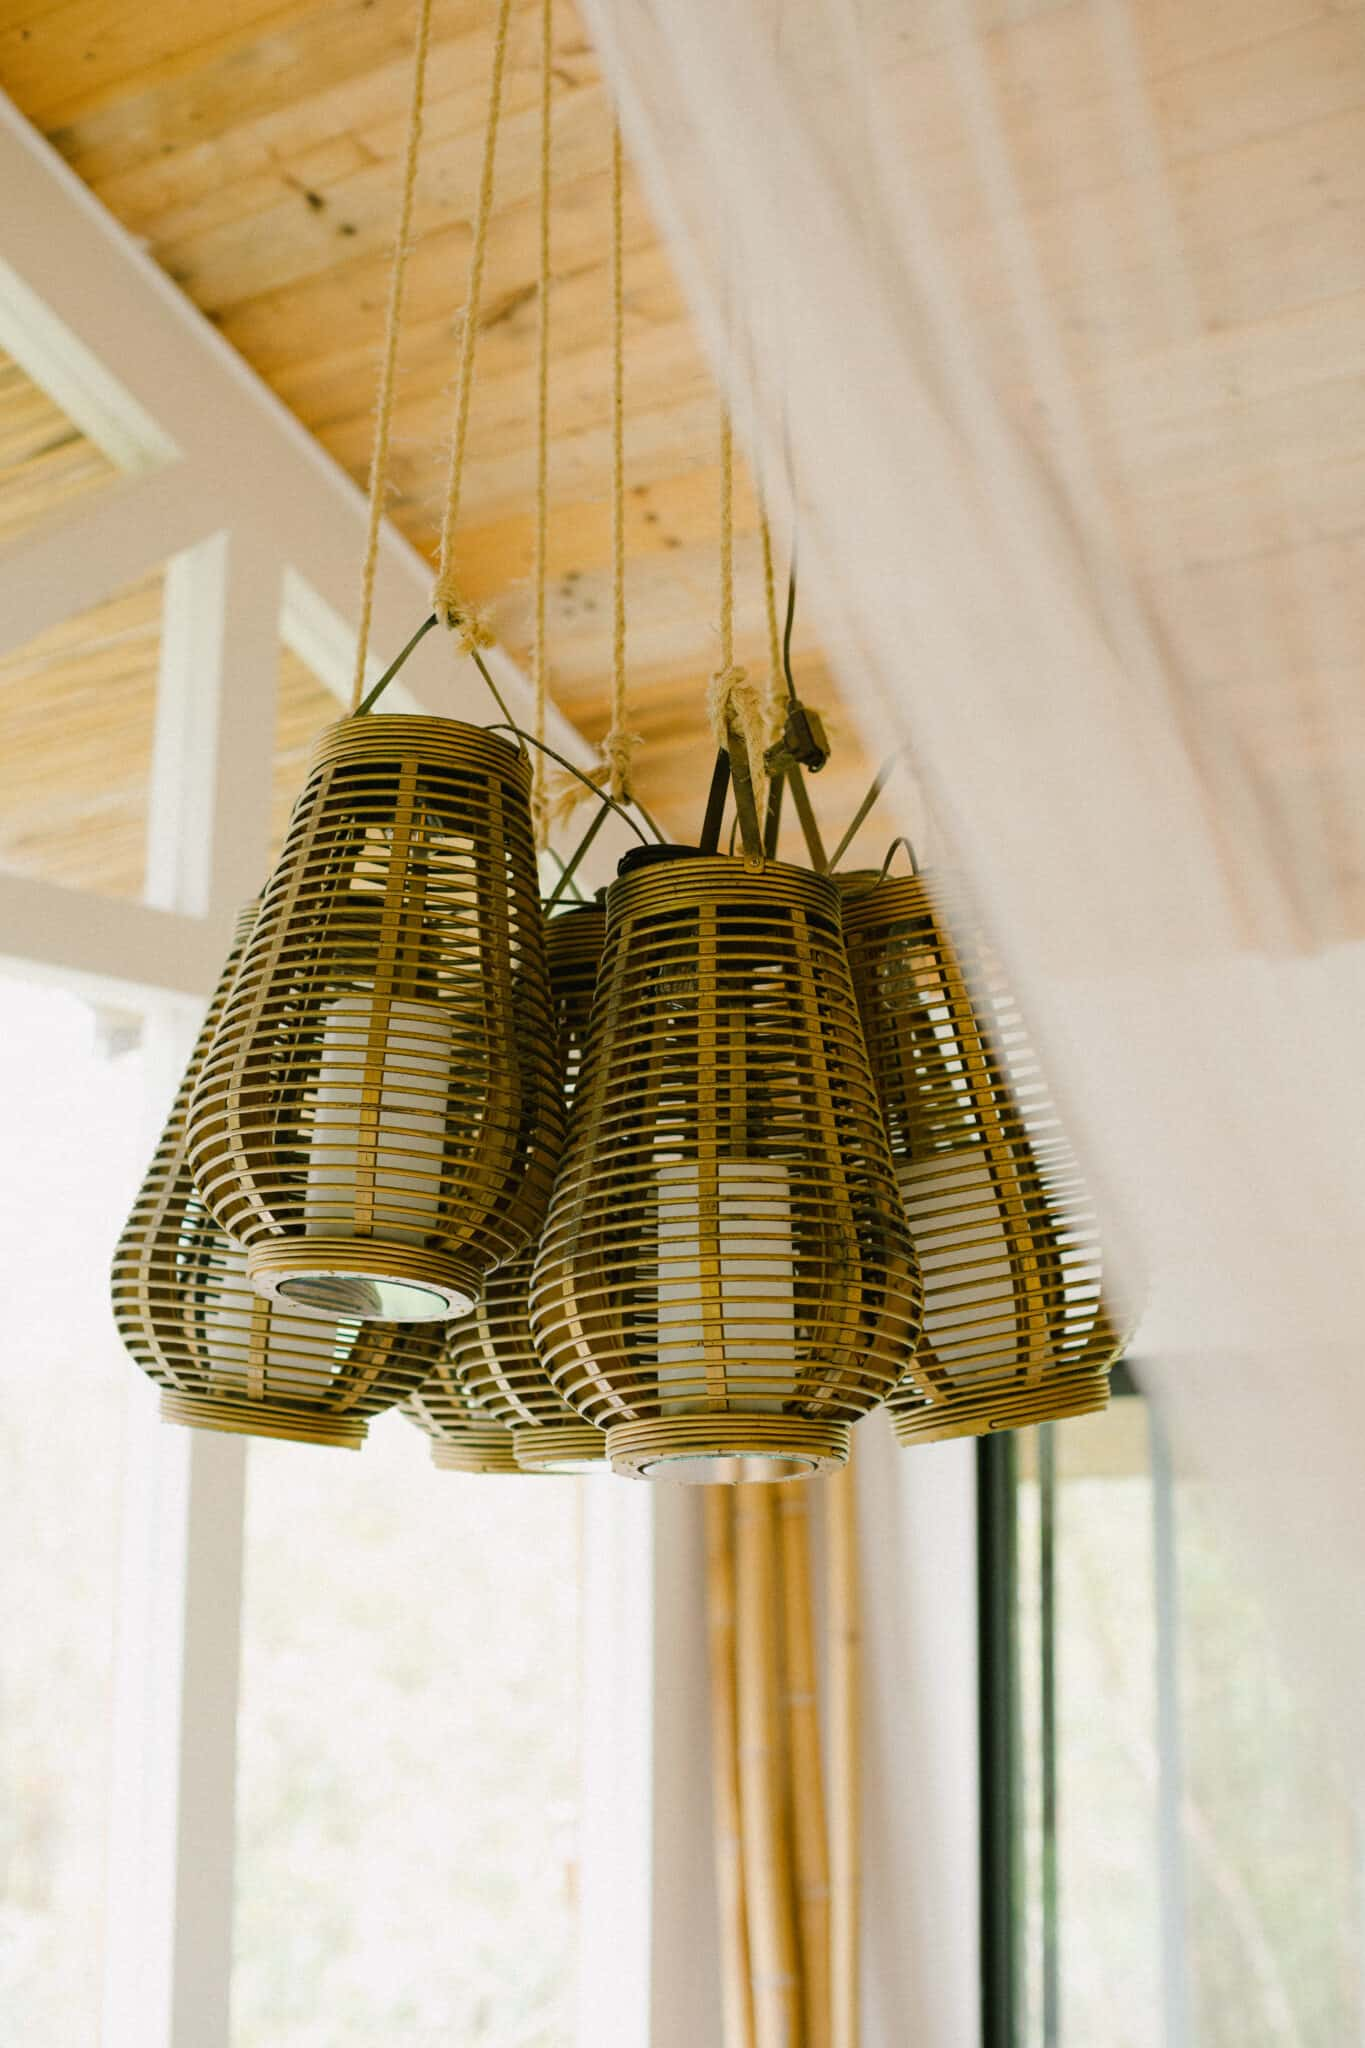 Custom Light Fixture in Hawaii Treehouse